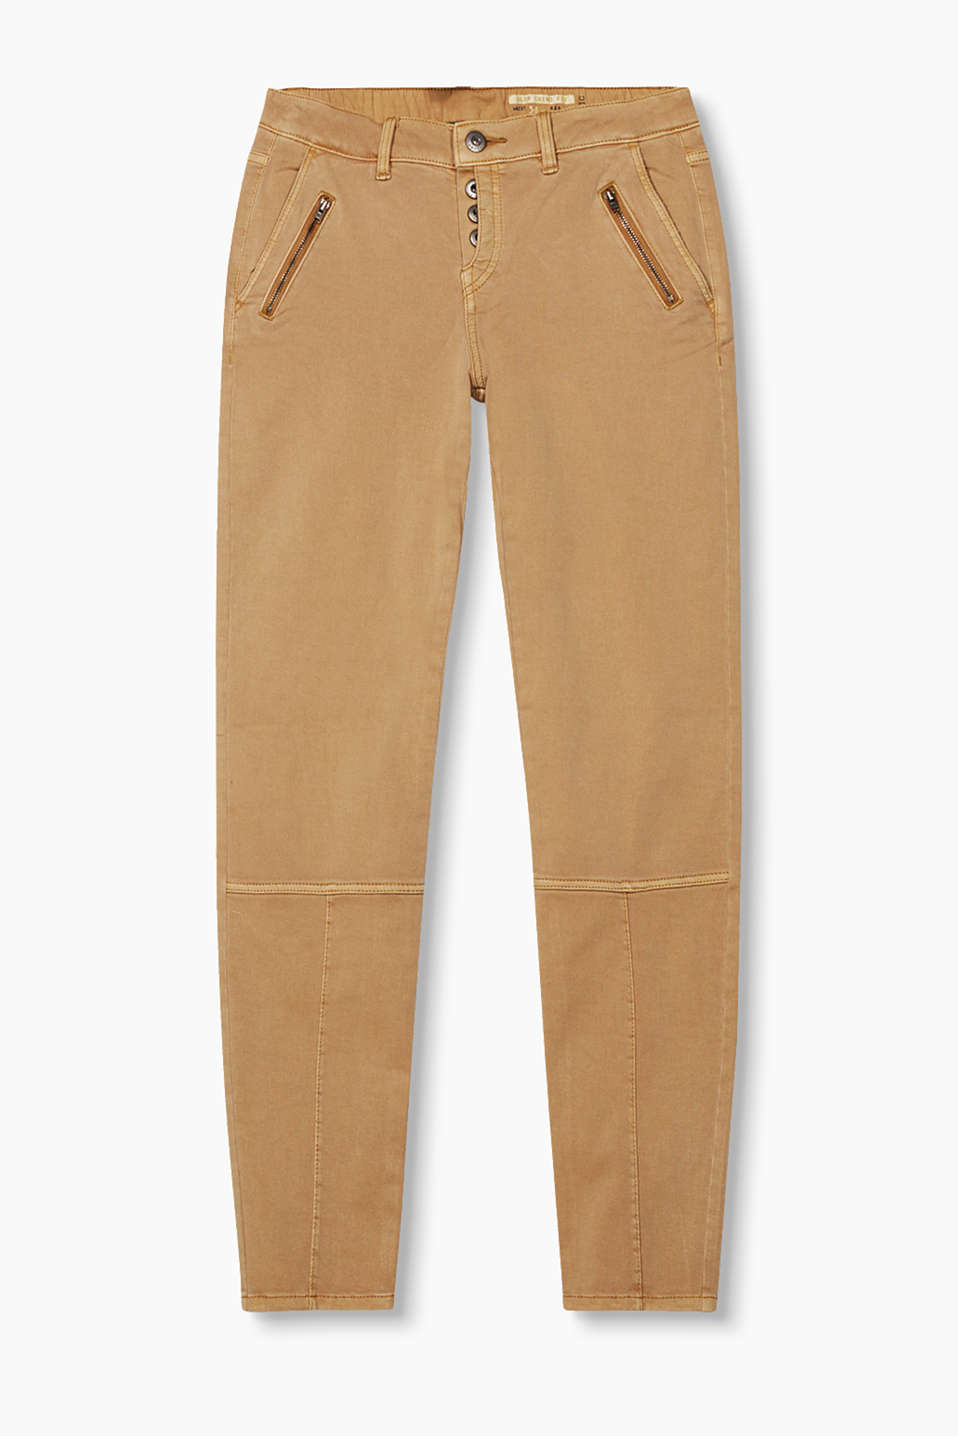 Casual garment-washed chinos in soft blended cotton with darts, zip details and a half-visible button placket